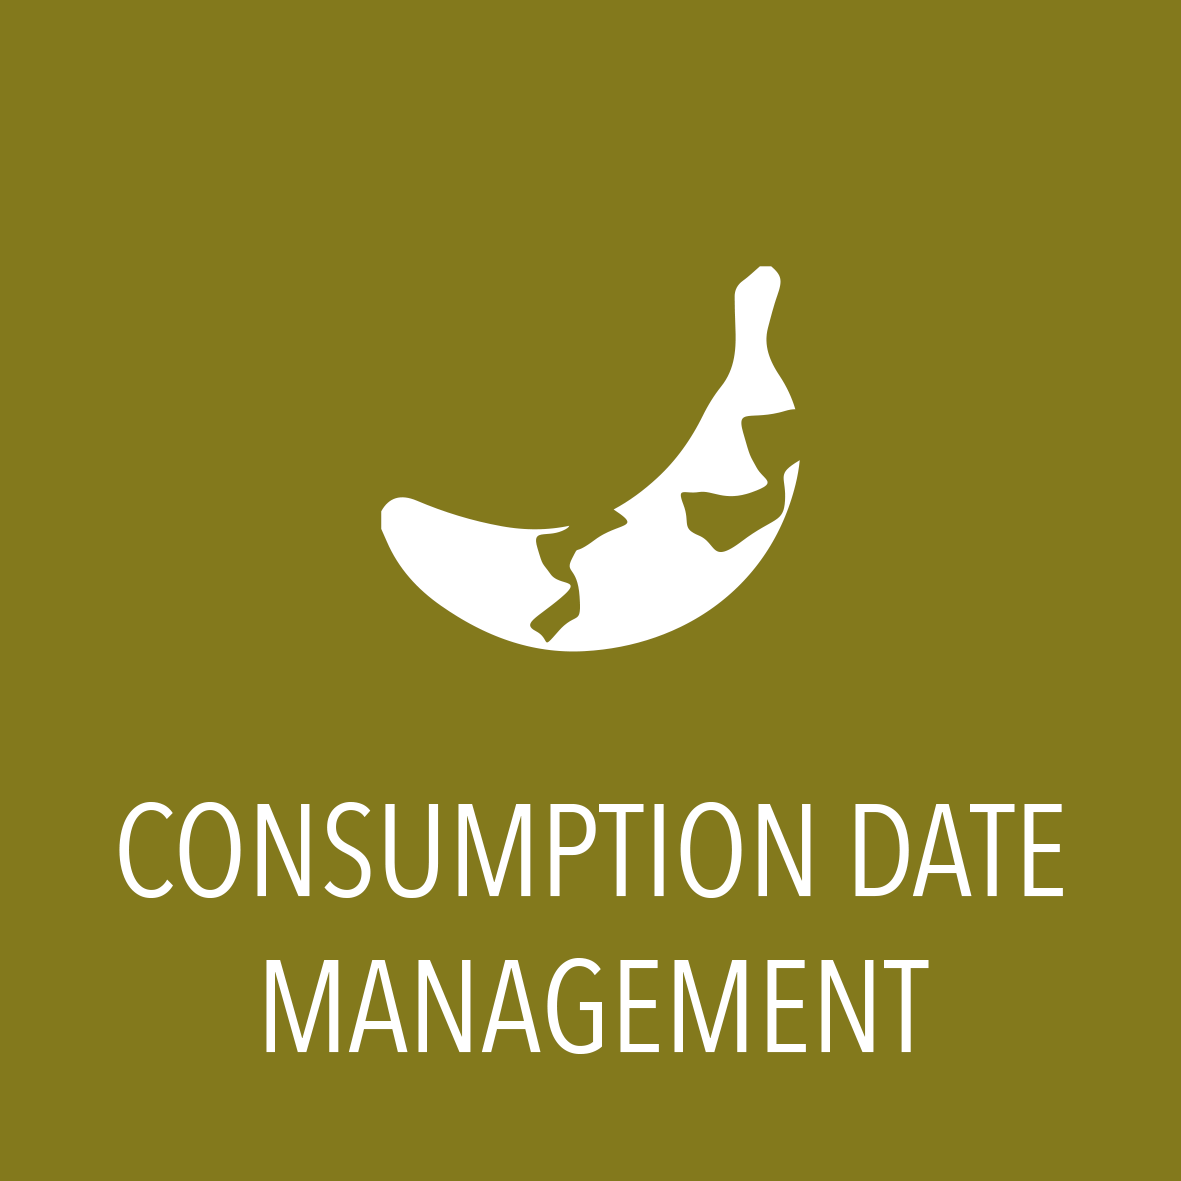 consumption date management.png